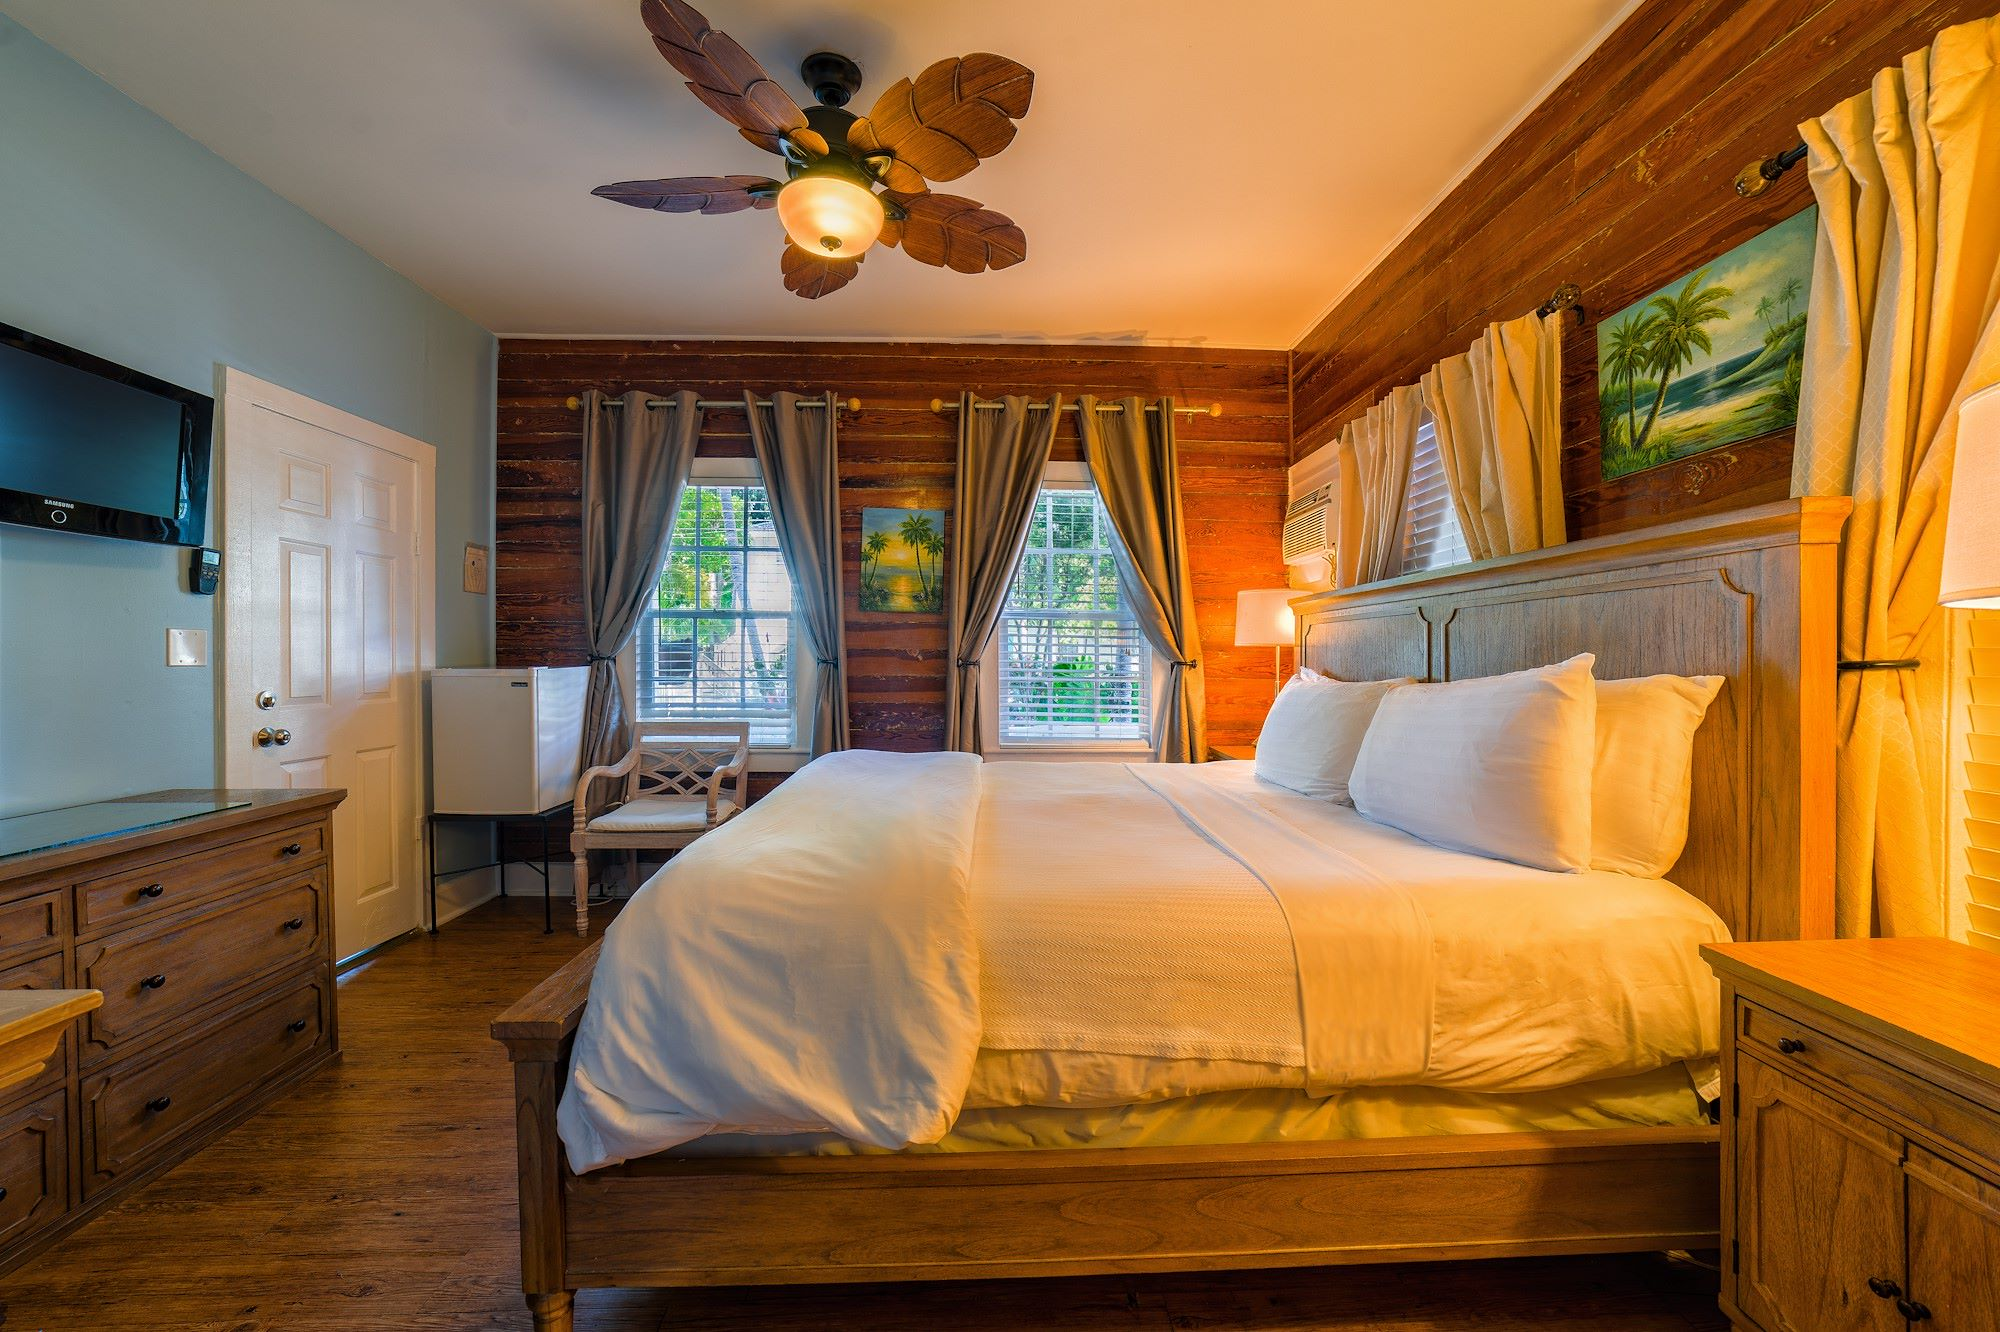 Image of Our Key West Deluxe Room with Porch